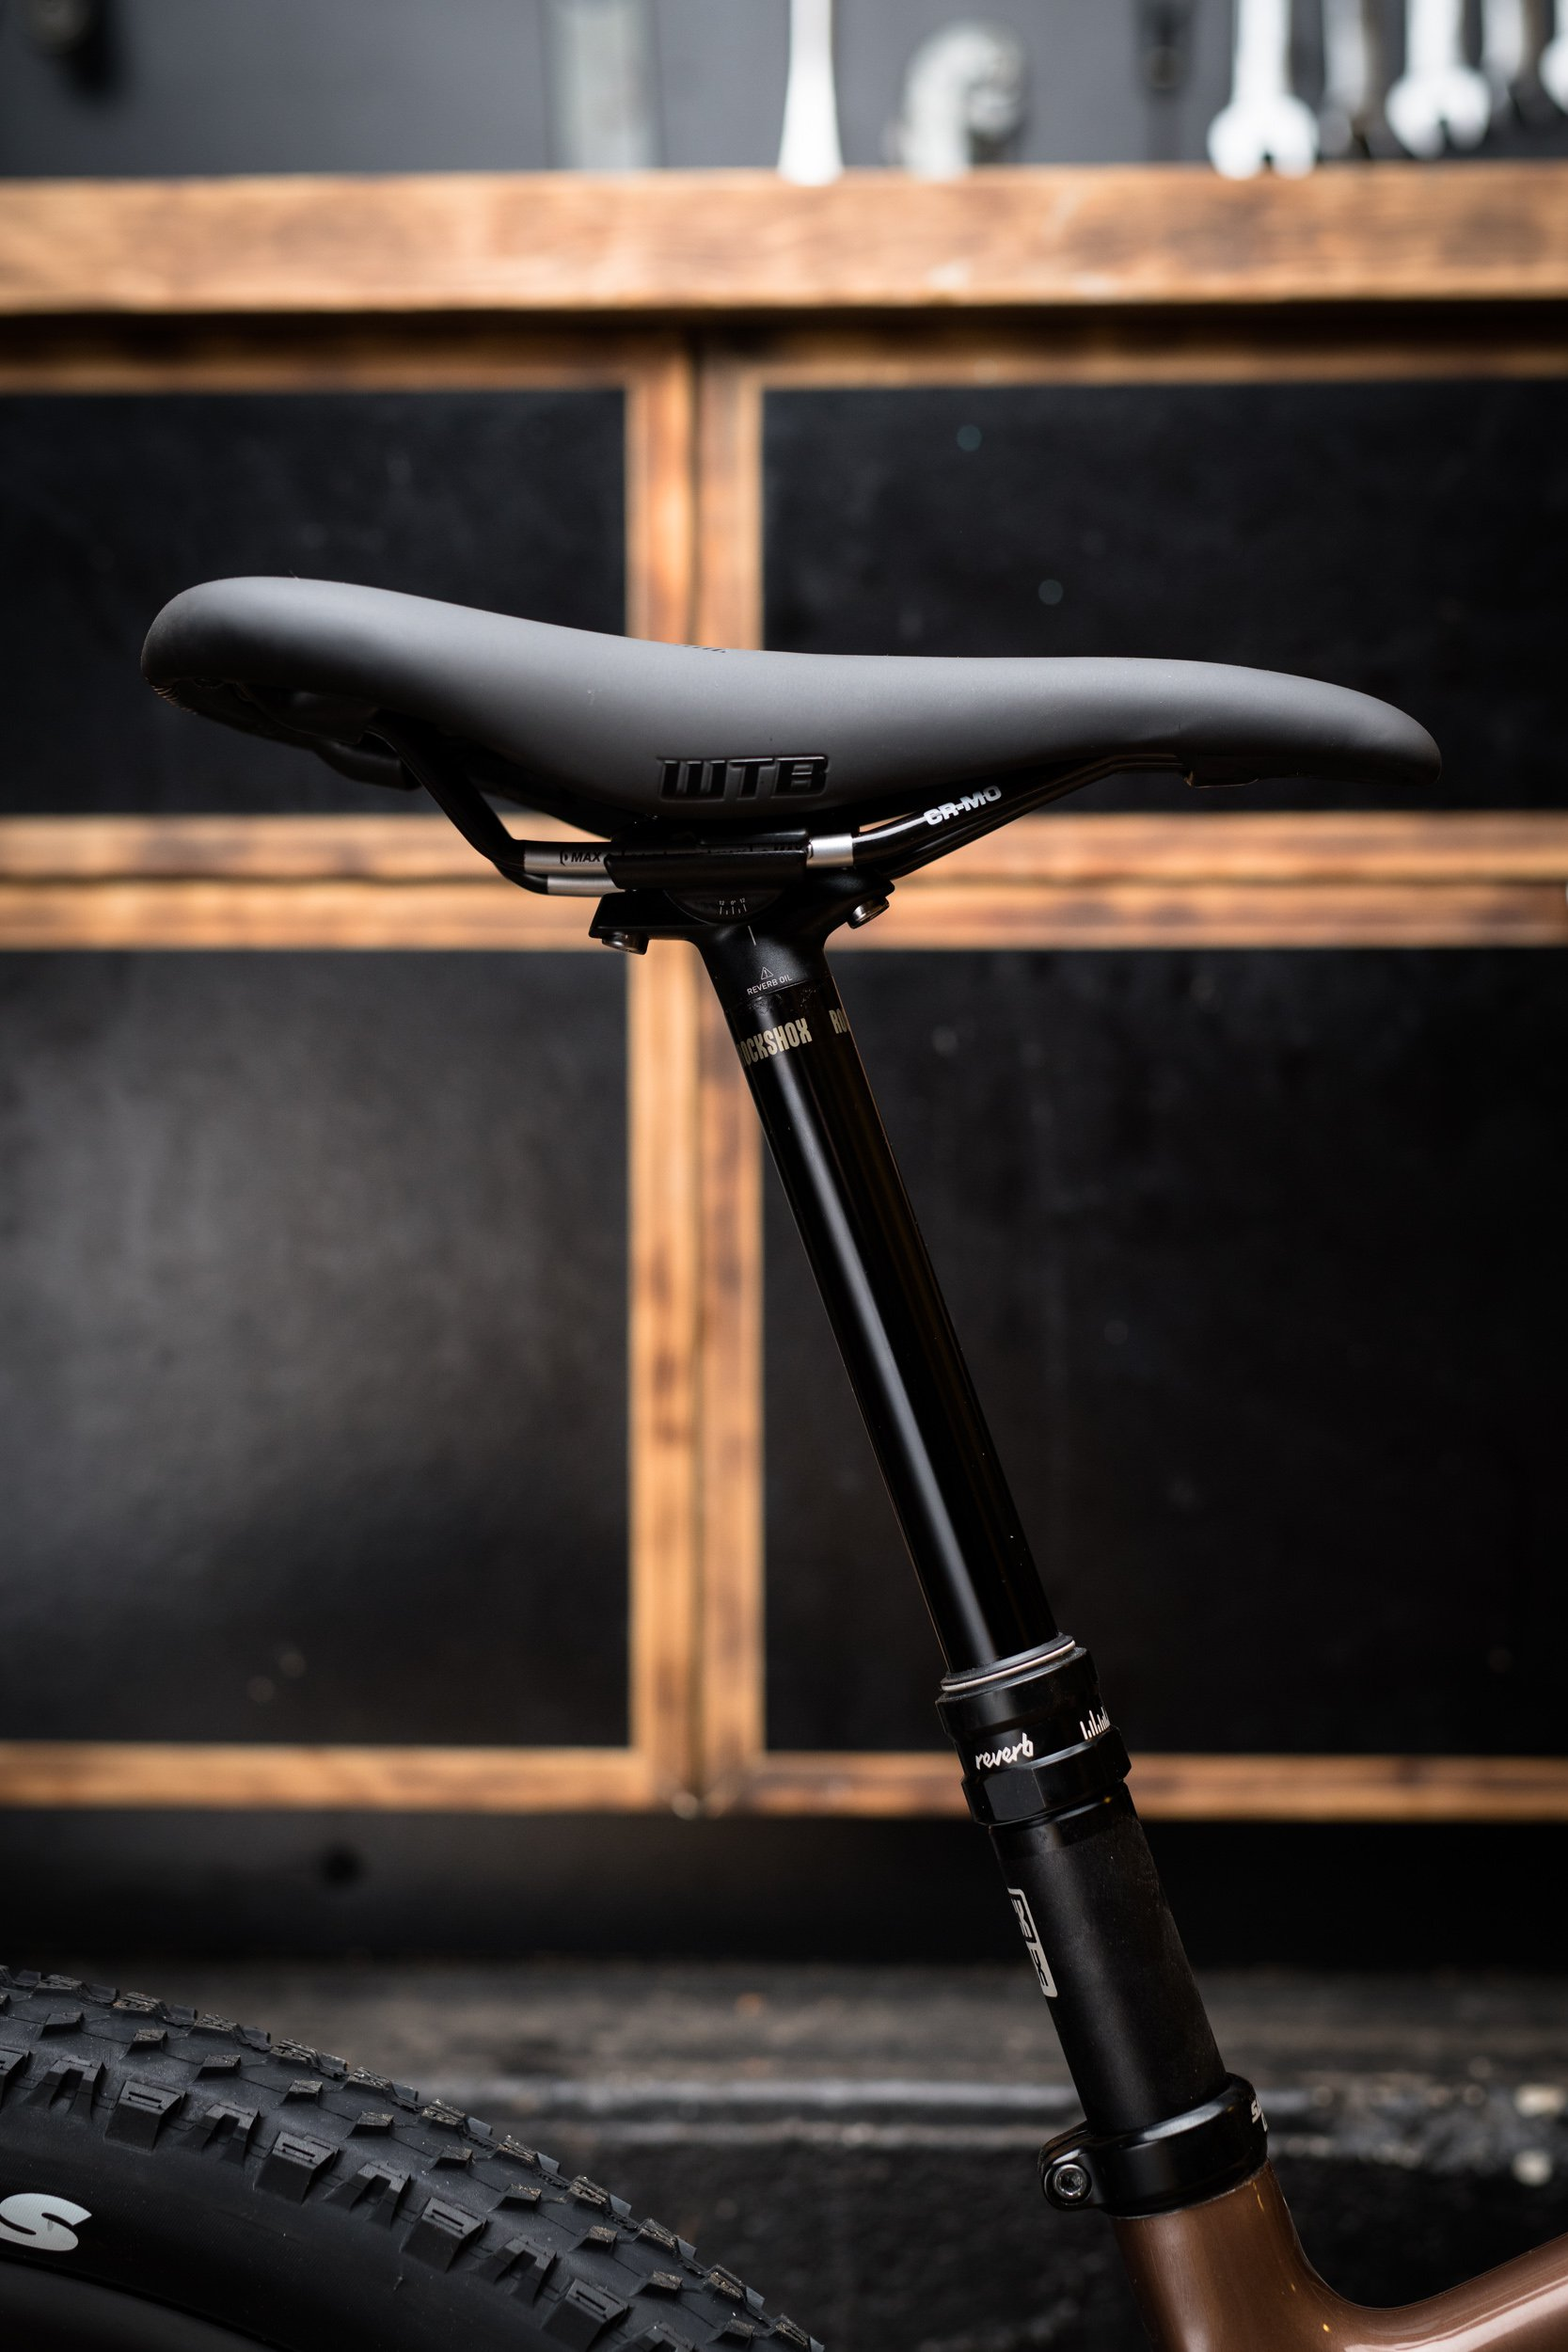 nsmb2019-gearreview-firstlook-santacruz-chameleon-7410.jpg